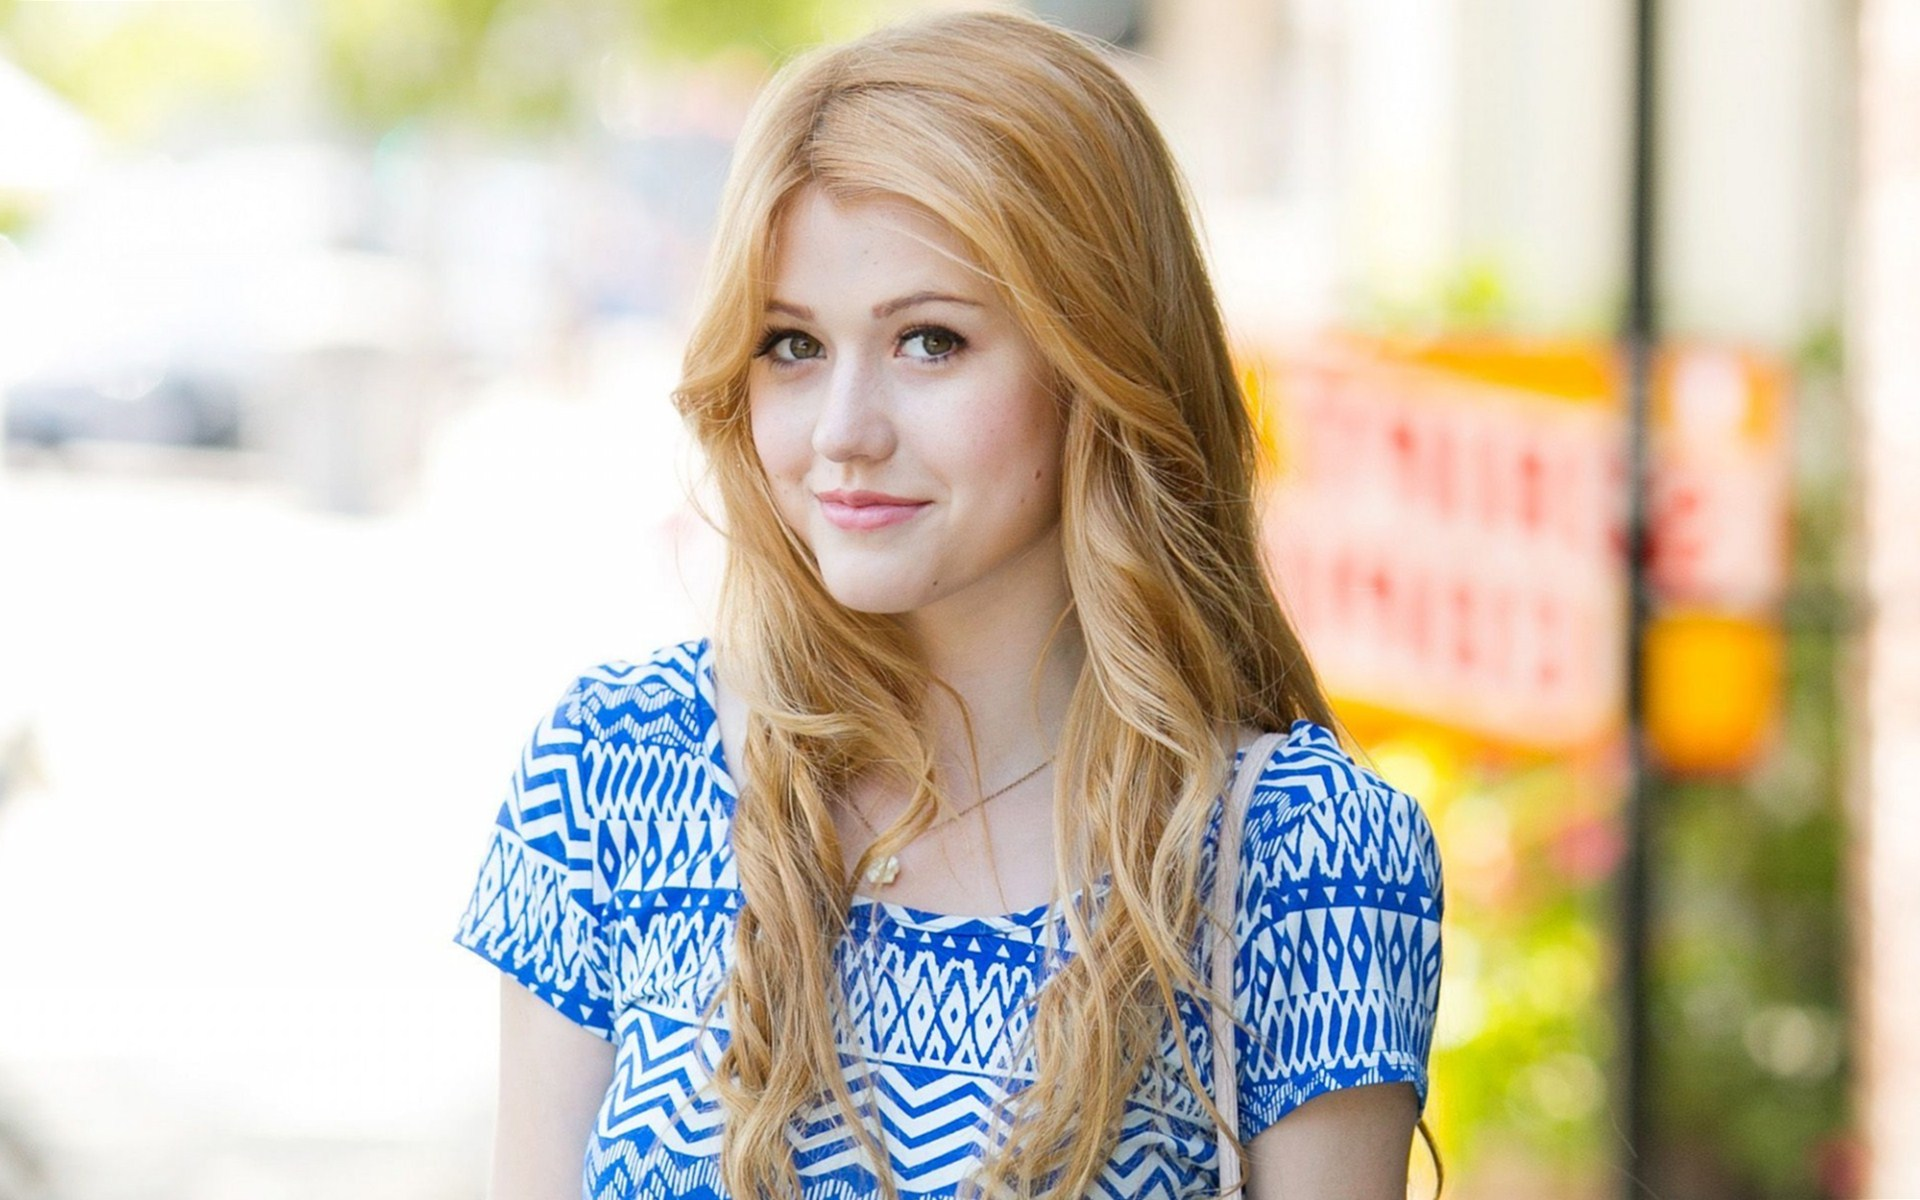 Katherine mcnamara wallpapers high resolution and quality - High resolution wallpaper celebrity ...